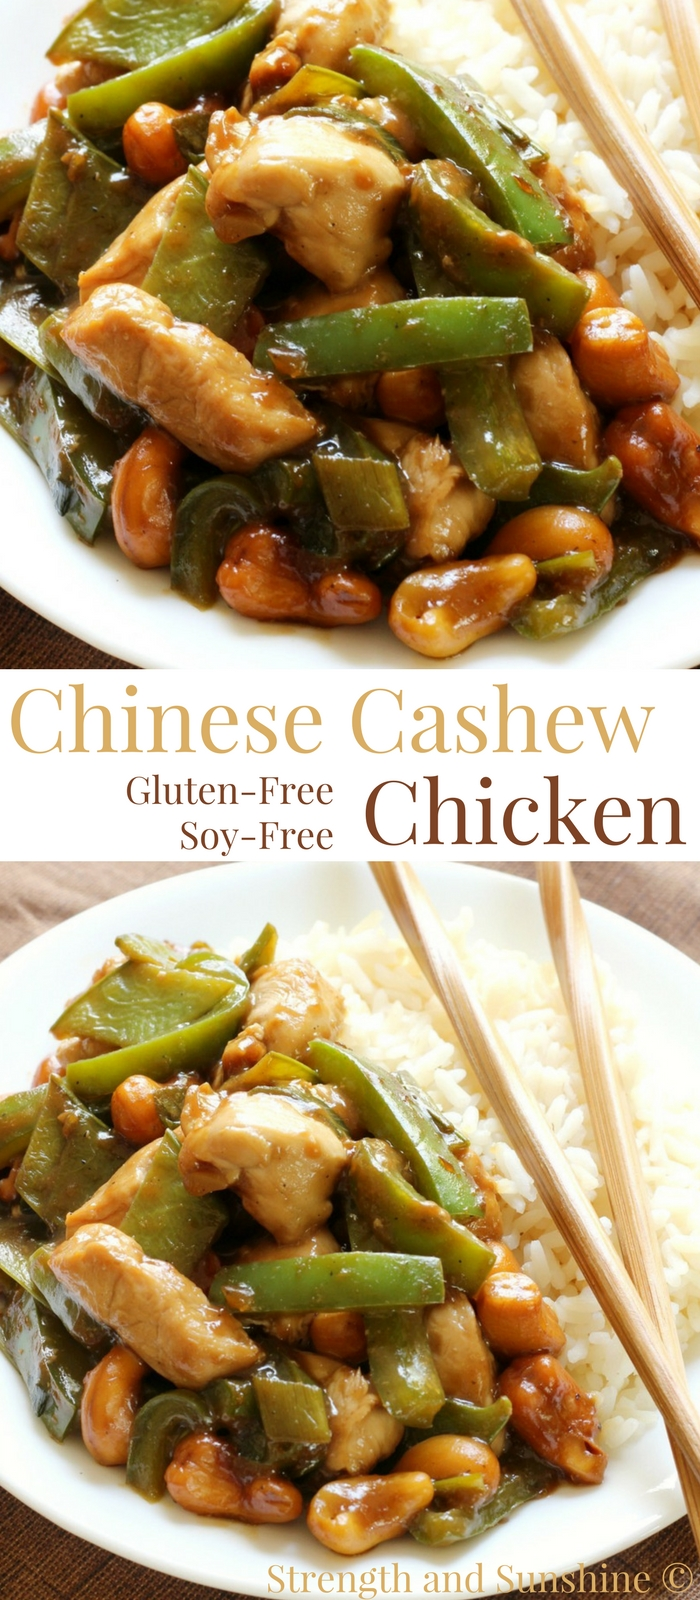 Chinese Cashew Chicken (Gluten-Free, Soy-Free) | Strength and Sunshine @RebeccaGF666 You won't need to spend money on take-out anymore! The best Chinese Cashew Chicken made right at home, gluten-free, and soy-free! A healthier recipe you can make for dinner and have the best leftovers for lunch! #cashewchicken #glutenfree #soyfree #takeout